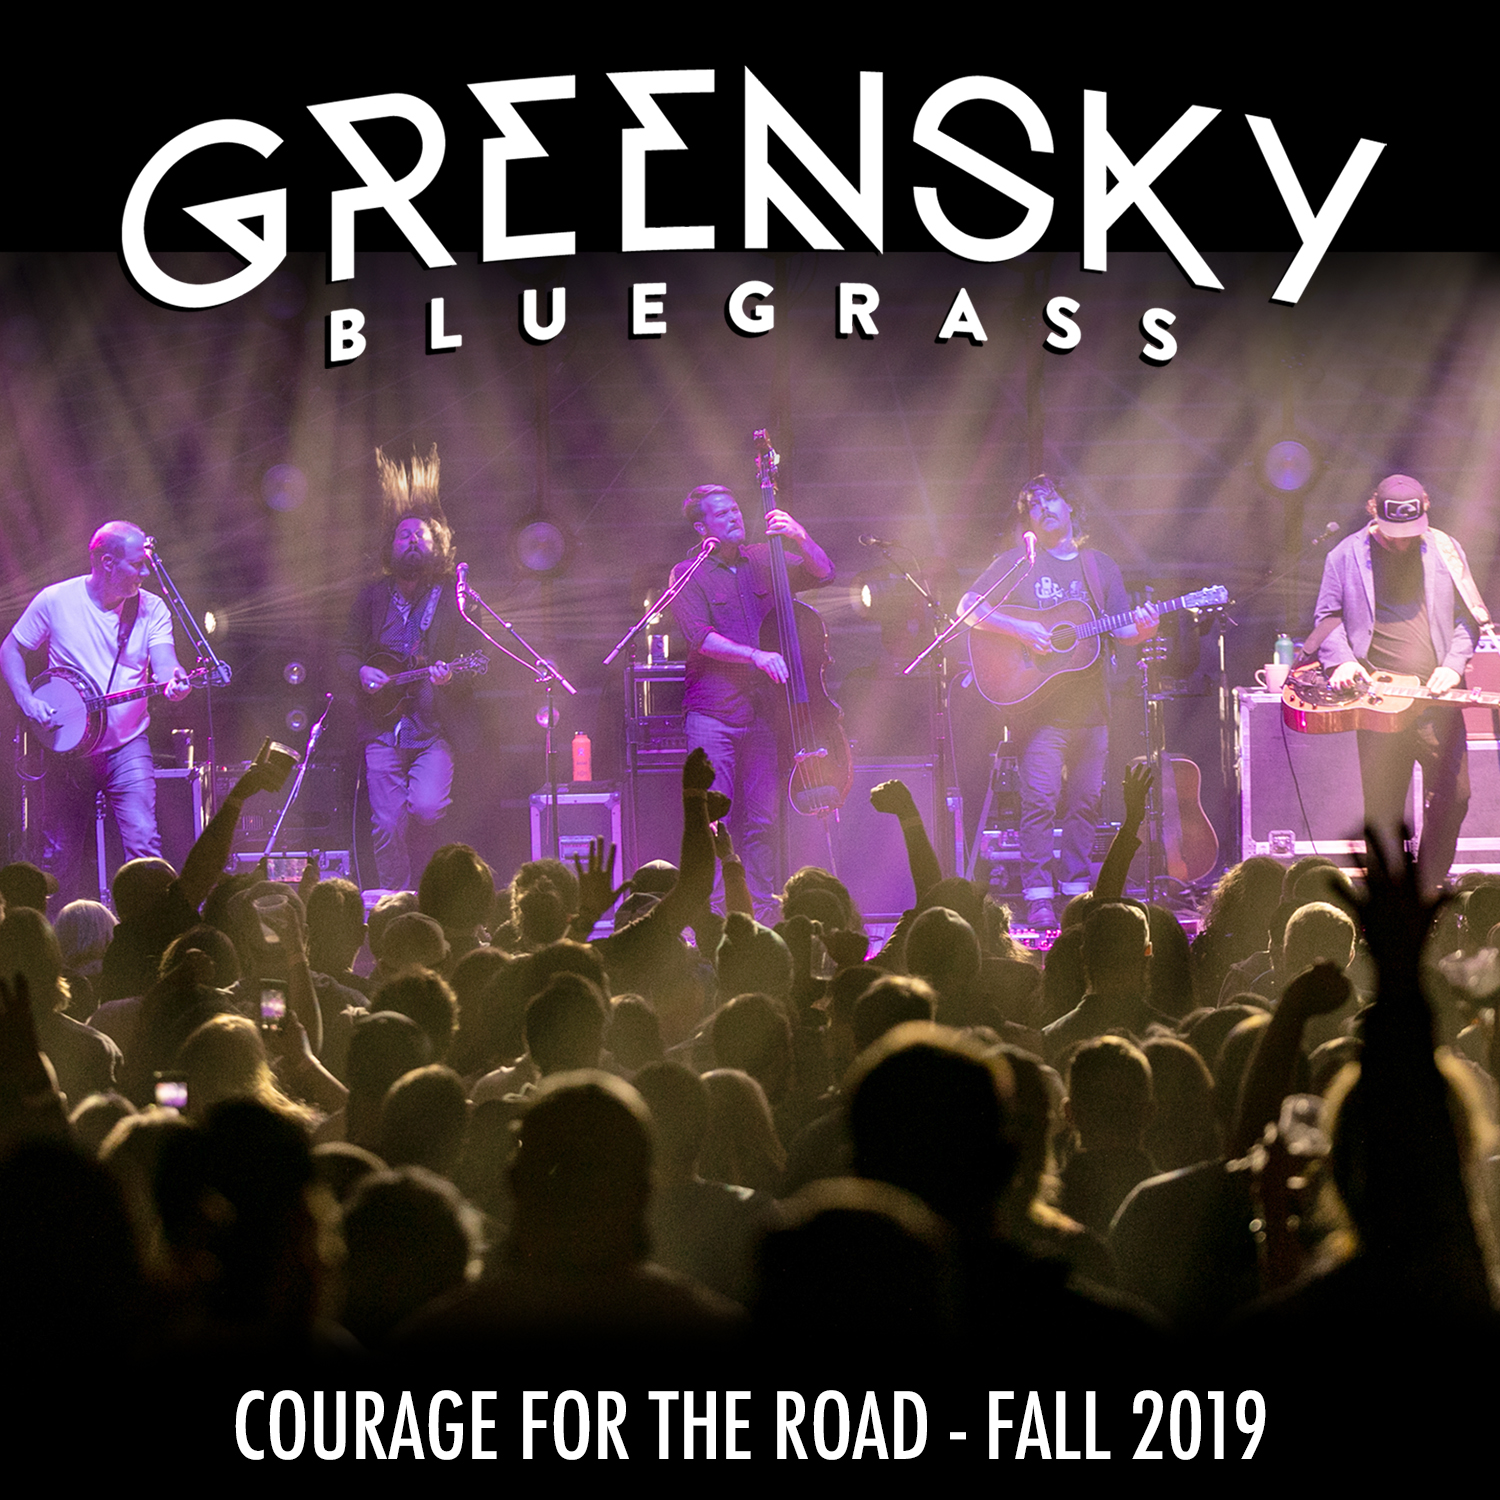 New Live Release From Greensky Bluegrass: Available Now for Streaming on Spotify